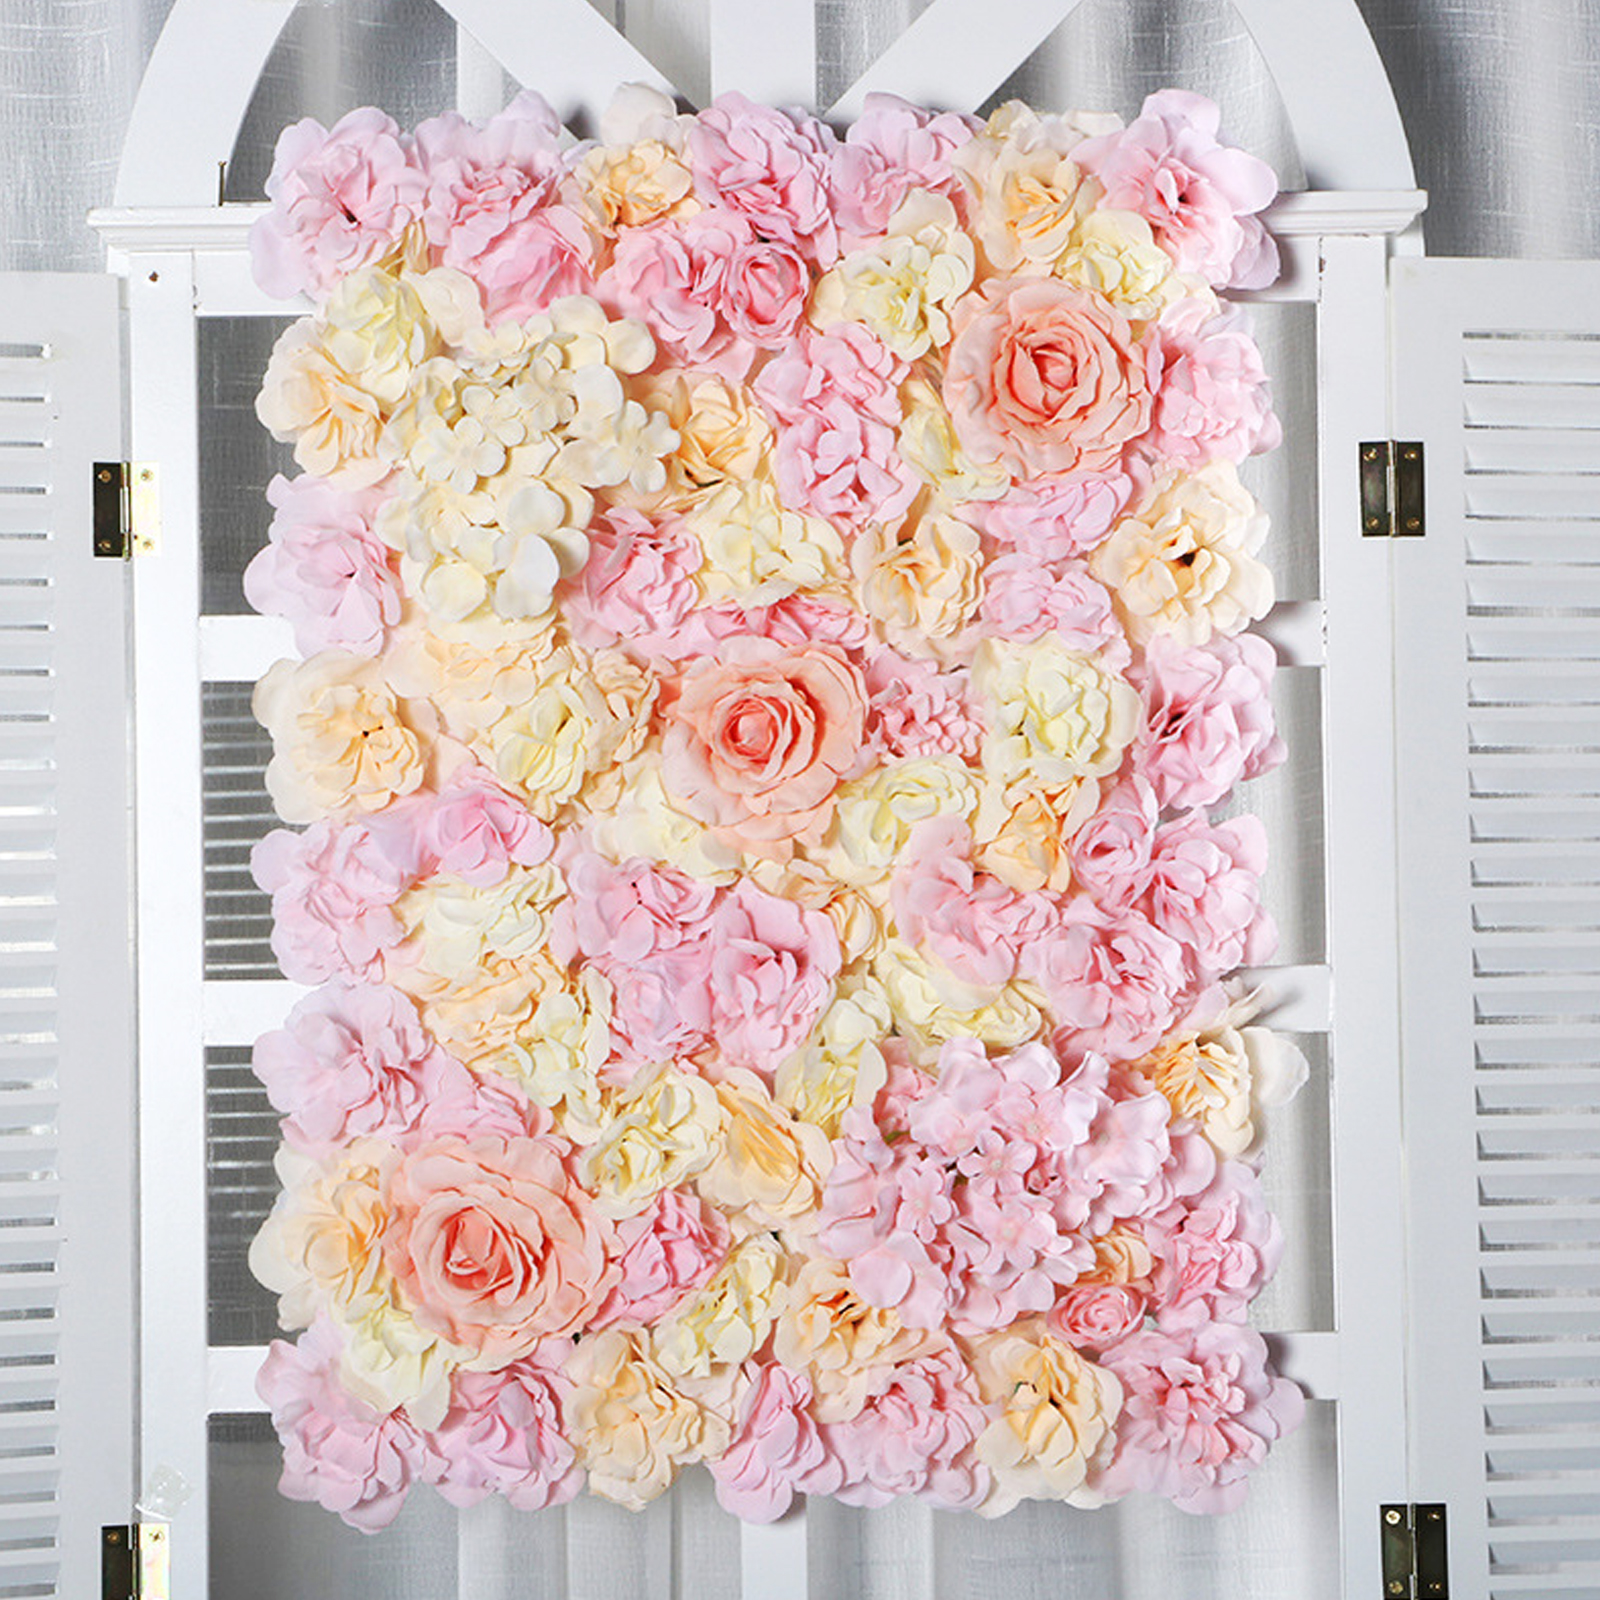 40x60cm Romantic Artificial Flower wall Silk Rose Flower for Wedding Decoration Wedding background decoration rose flowers